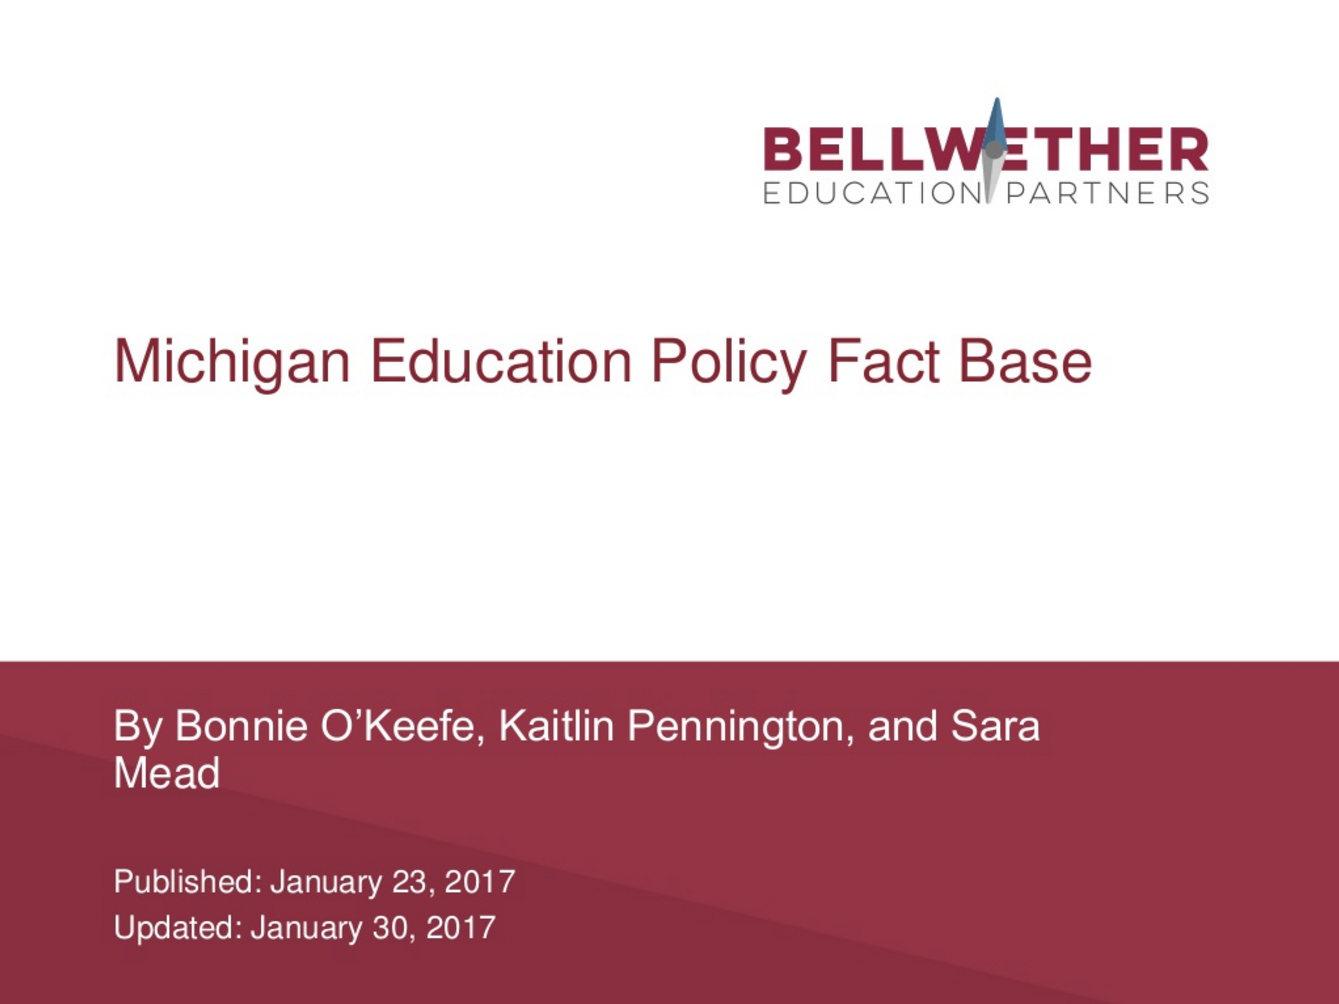 Michigan Education Landscape: A Fact Base for the DeVos Debate Cover Image